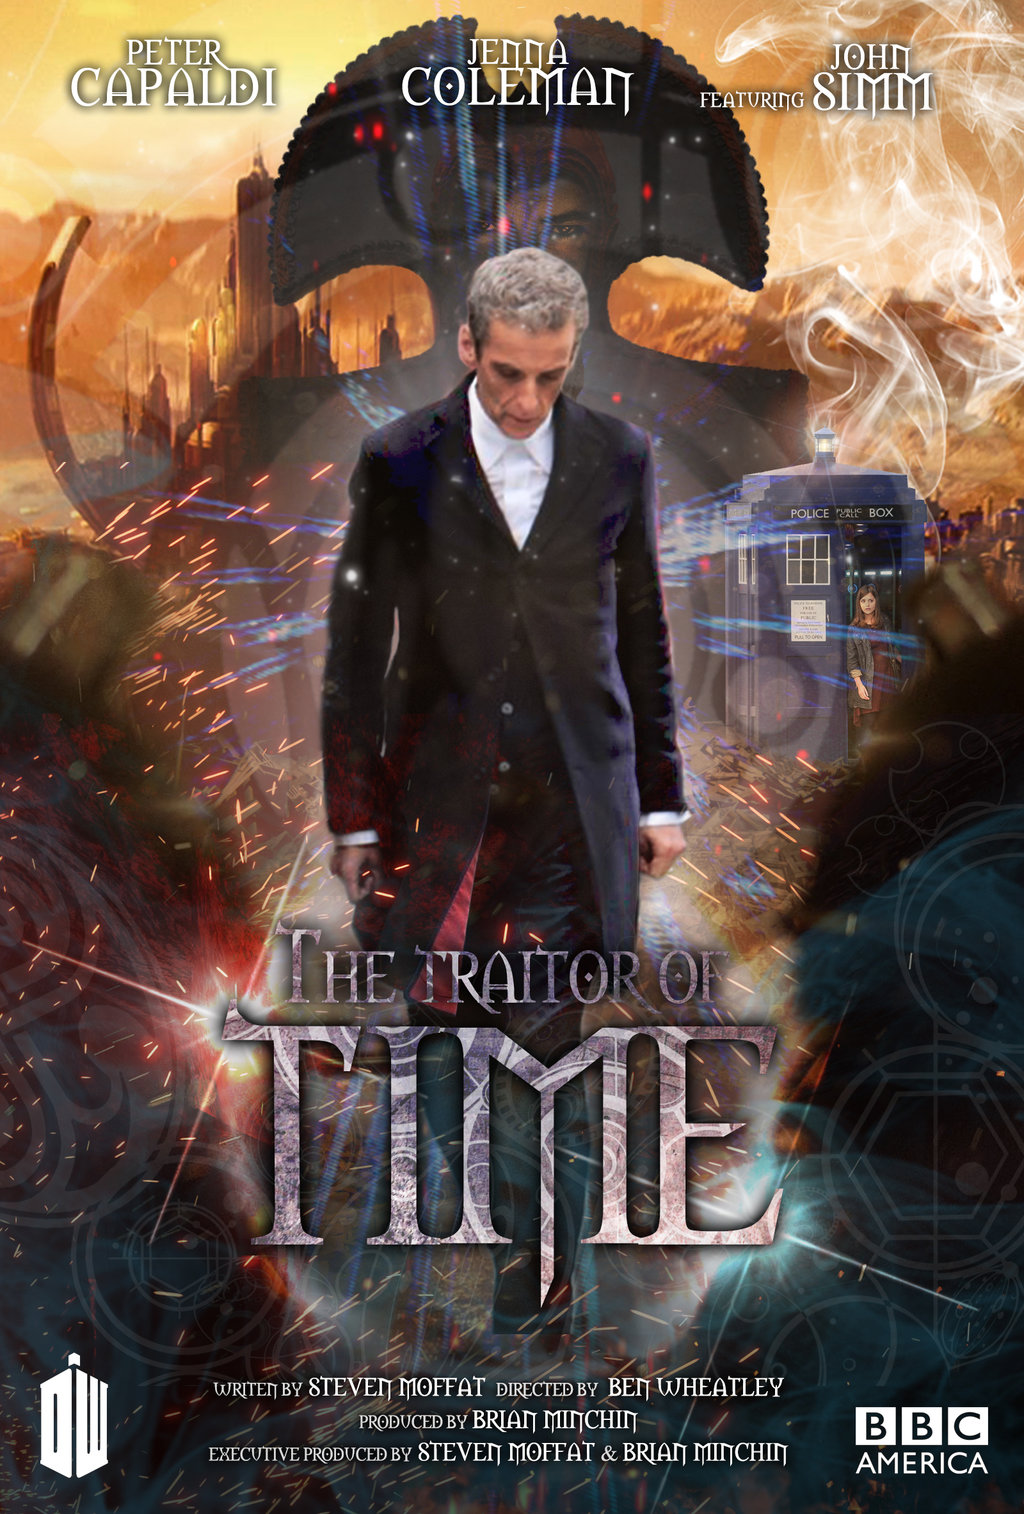 Free Download Apprentice Autumn 2015 Doctor Who Series 8 Fanmade